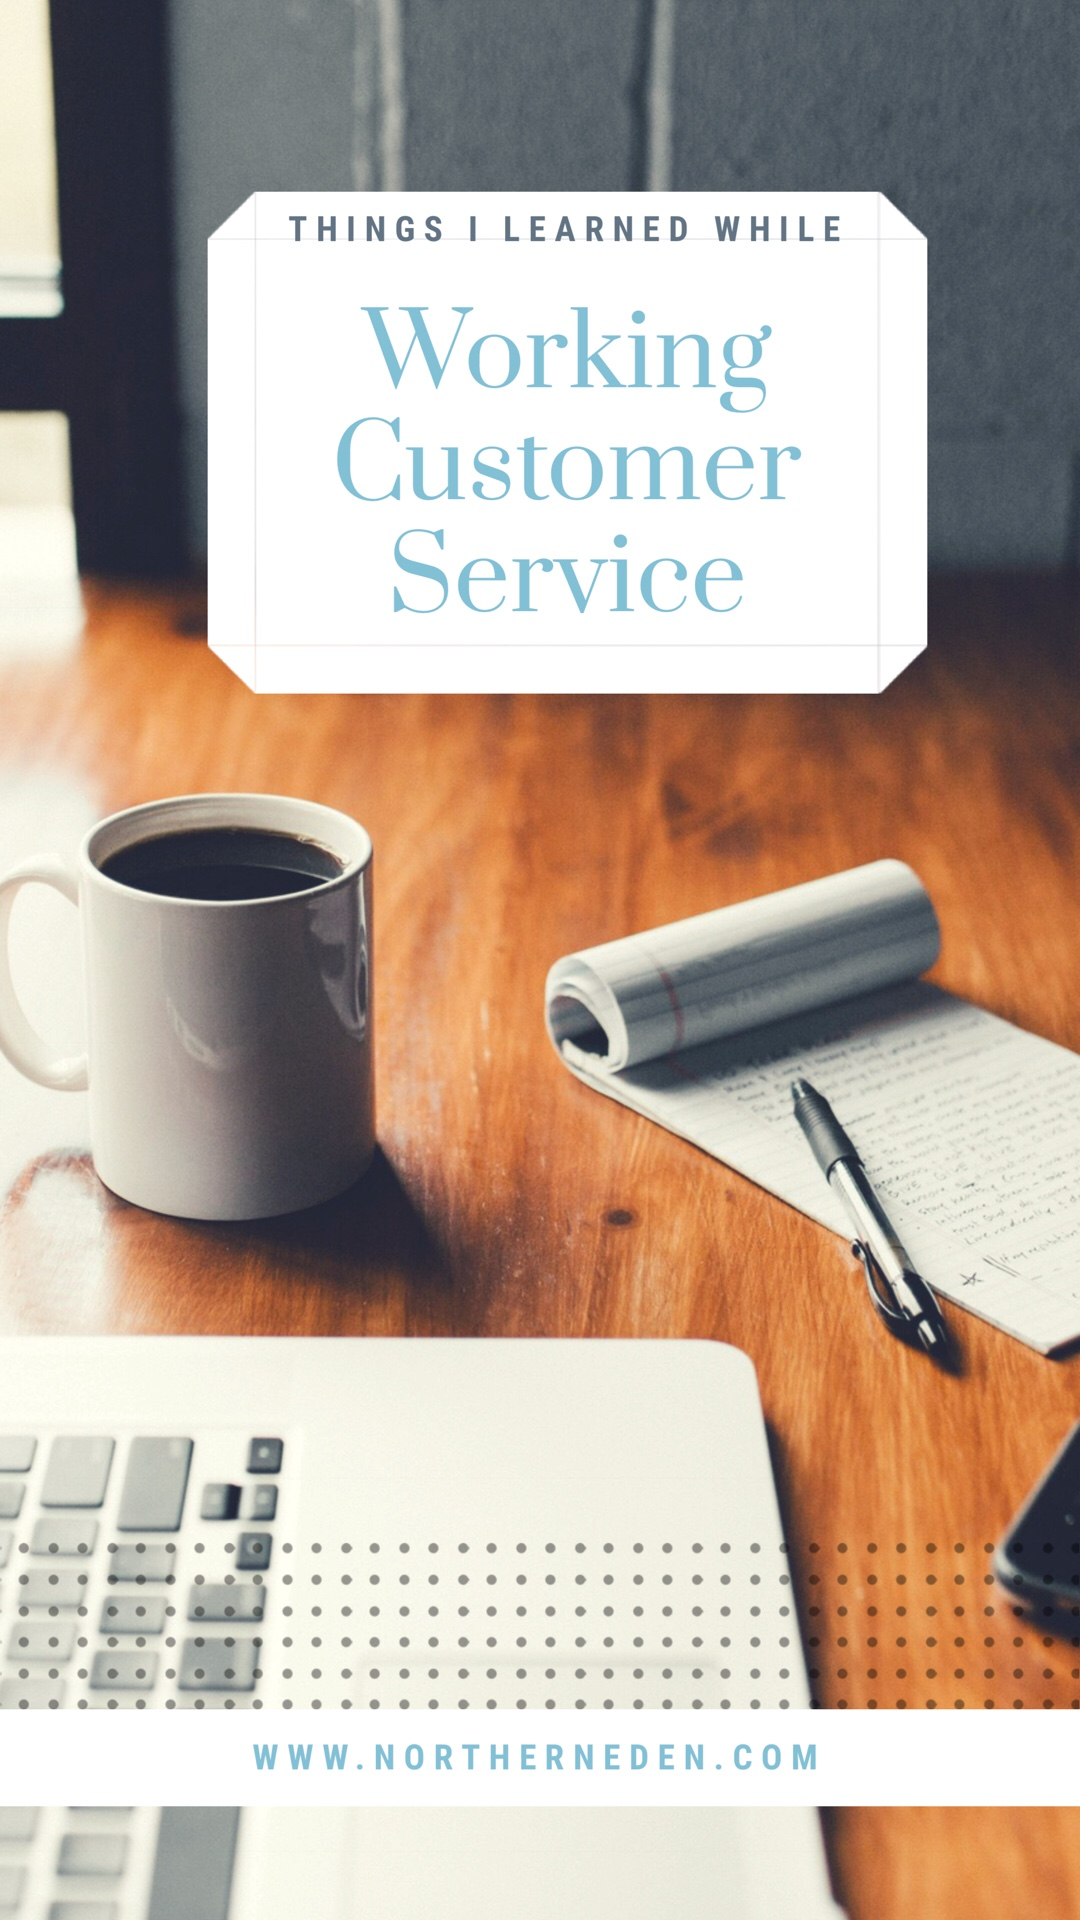 5 Things I learned as a Customer Service Rep